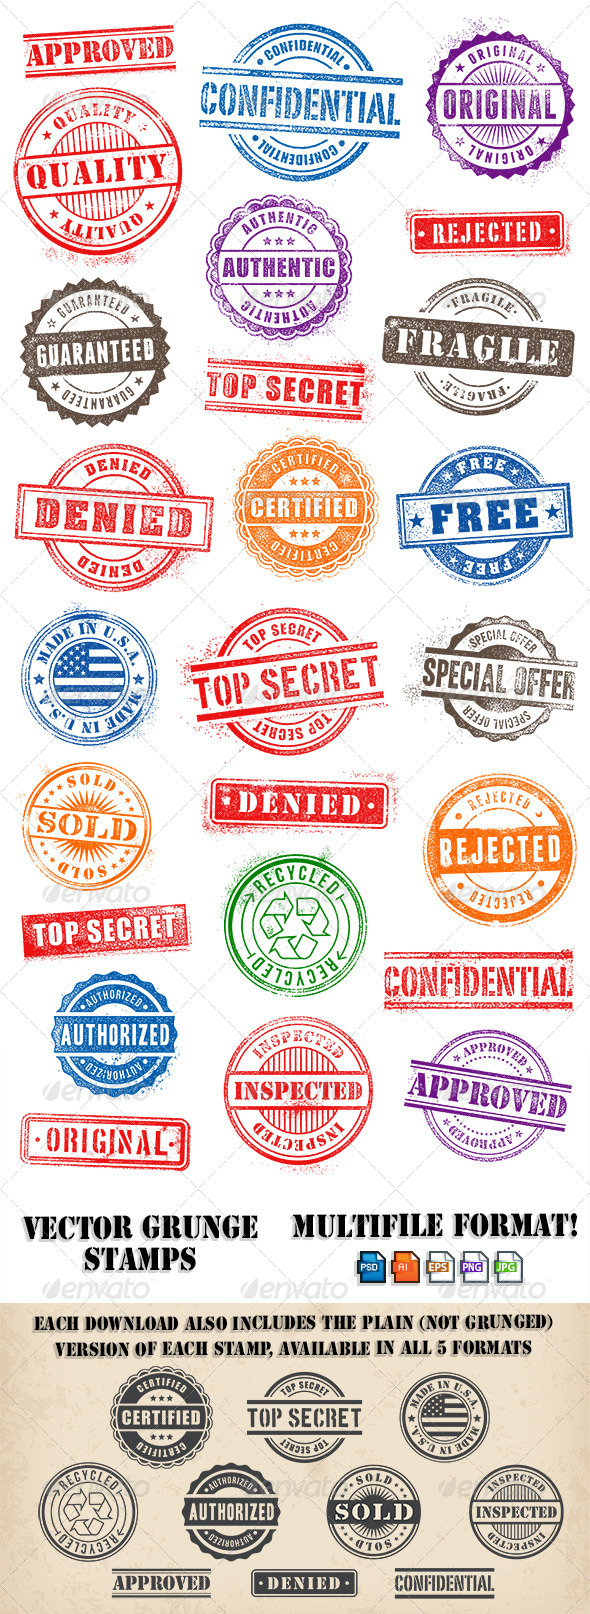 Grunge Commercial and Promotional Stamps Set - Vectors